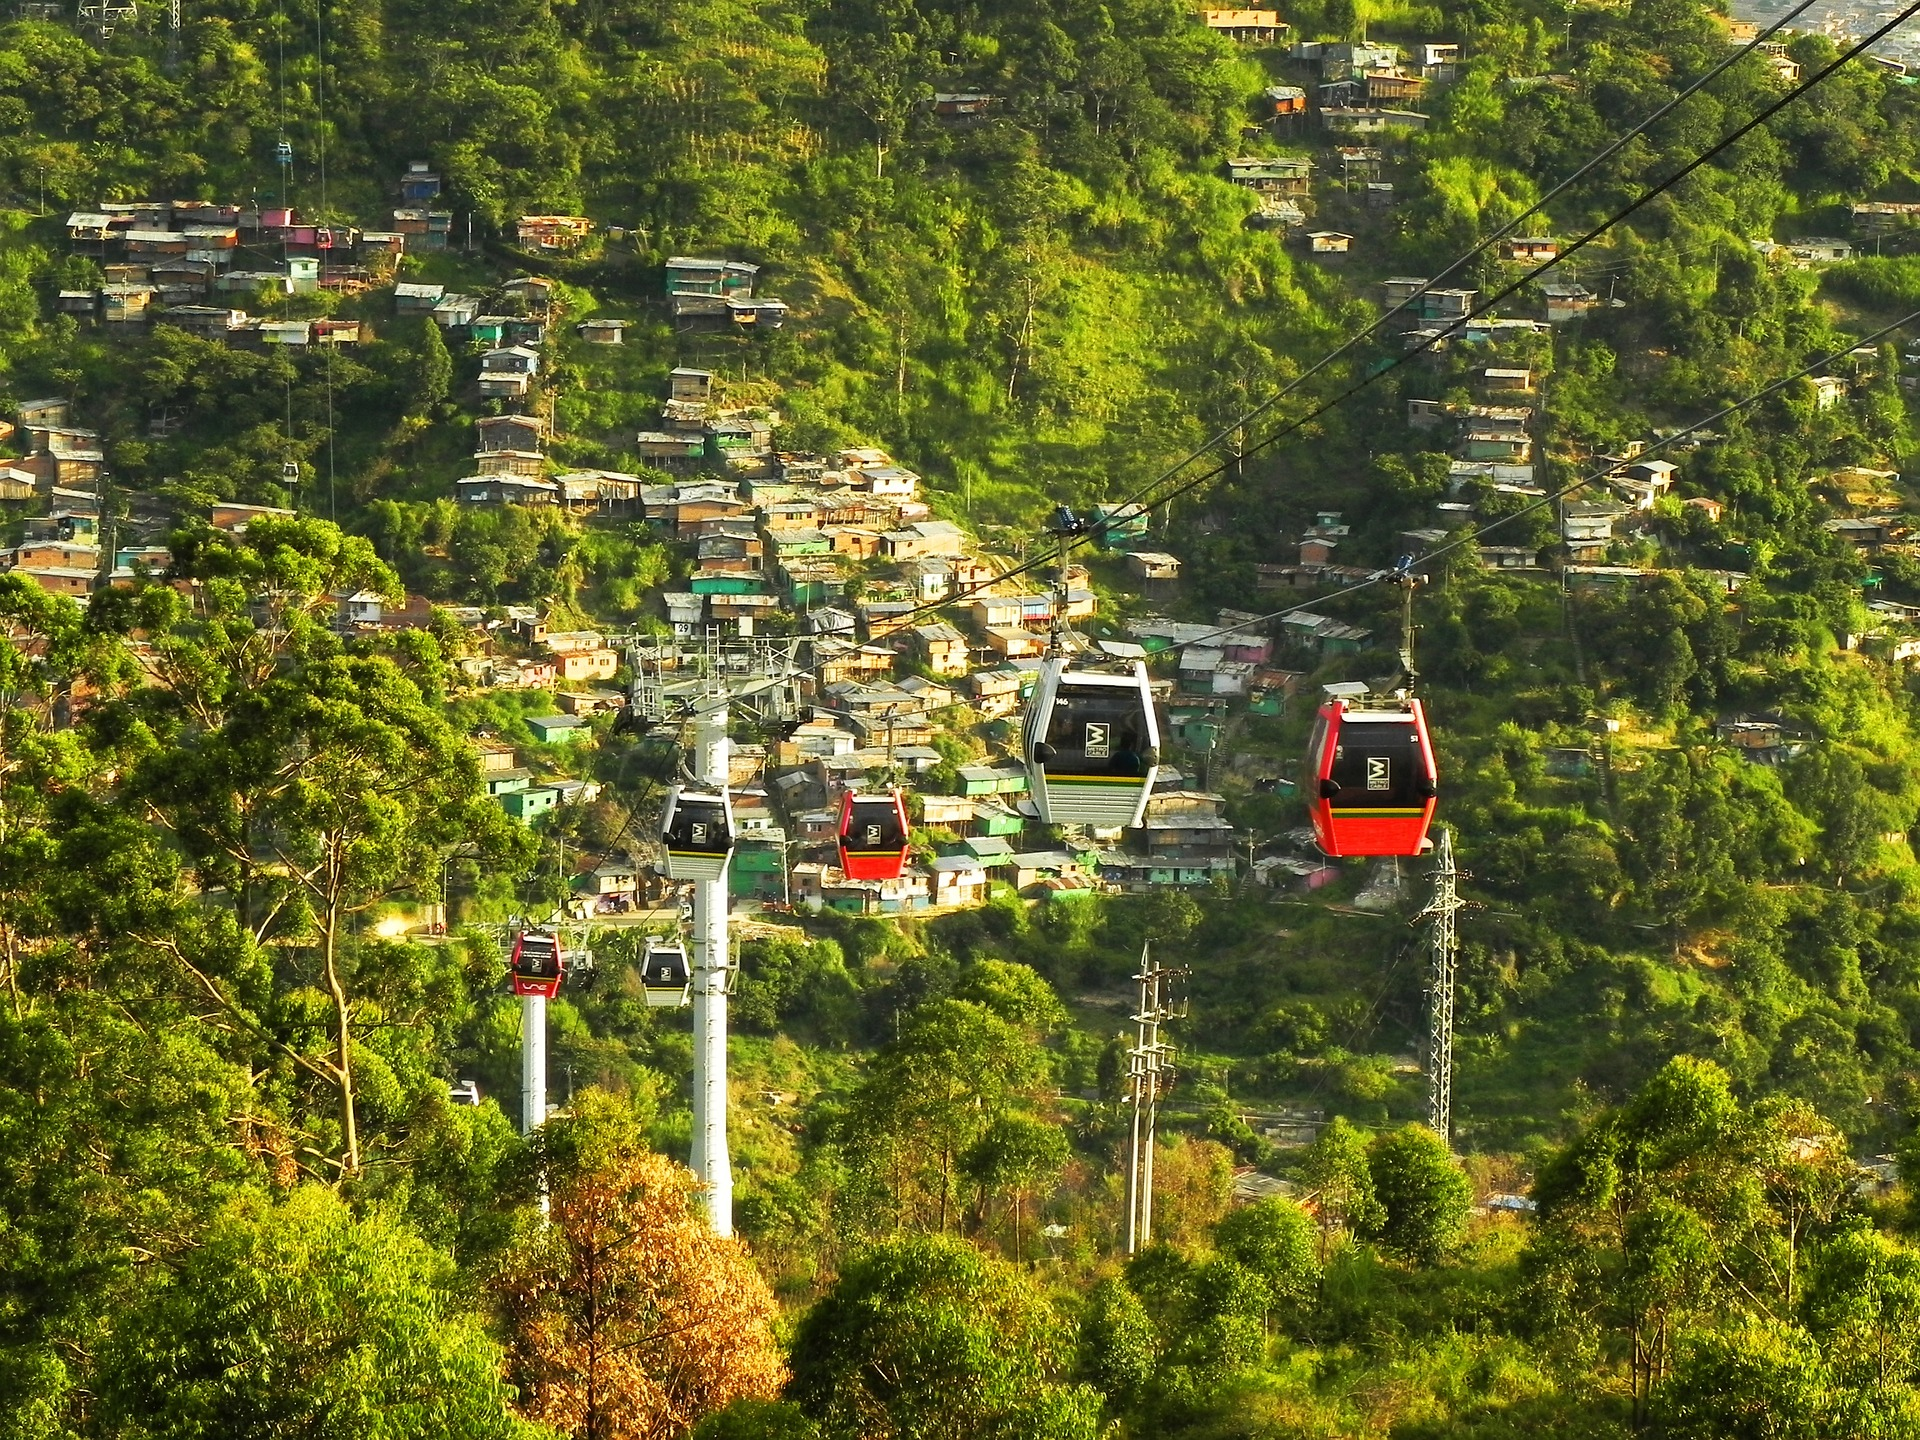 Medellin | DigiNo | 10 Best Locations For Digital Nomads